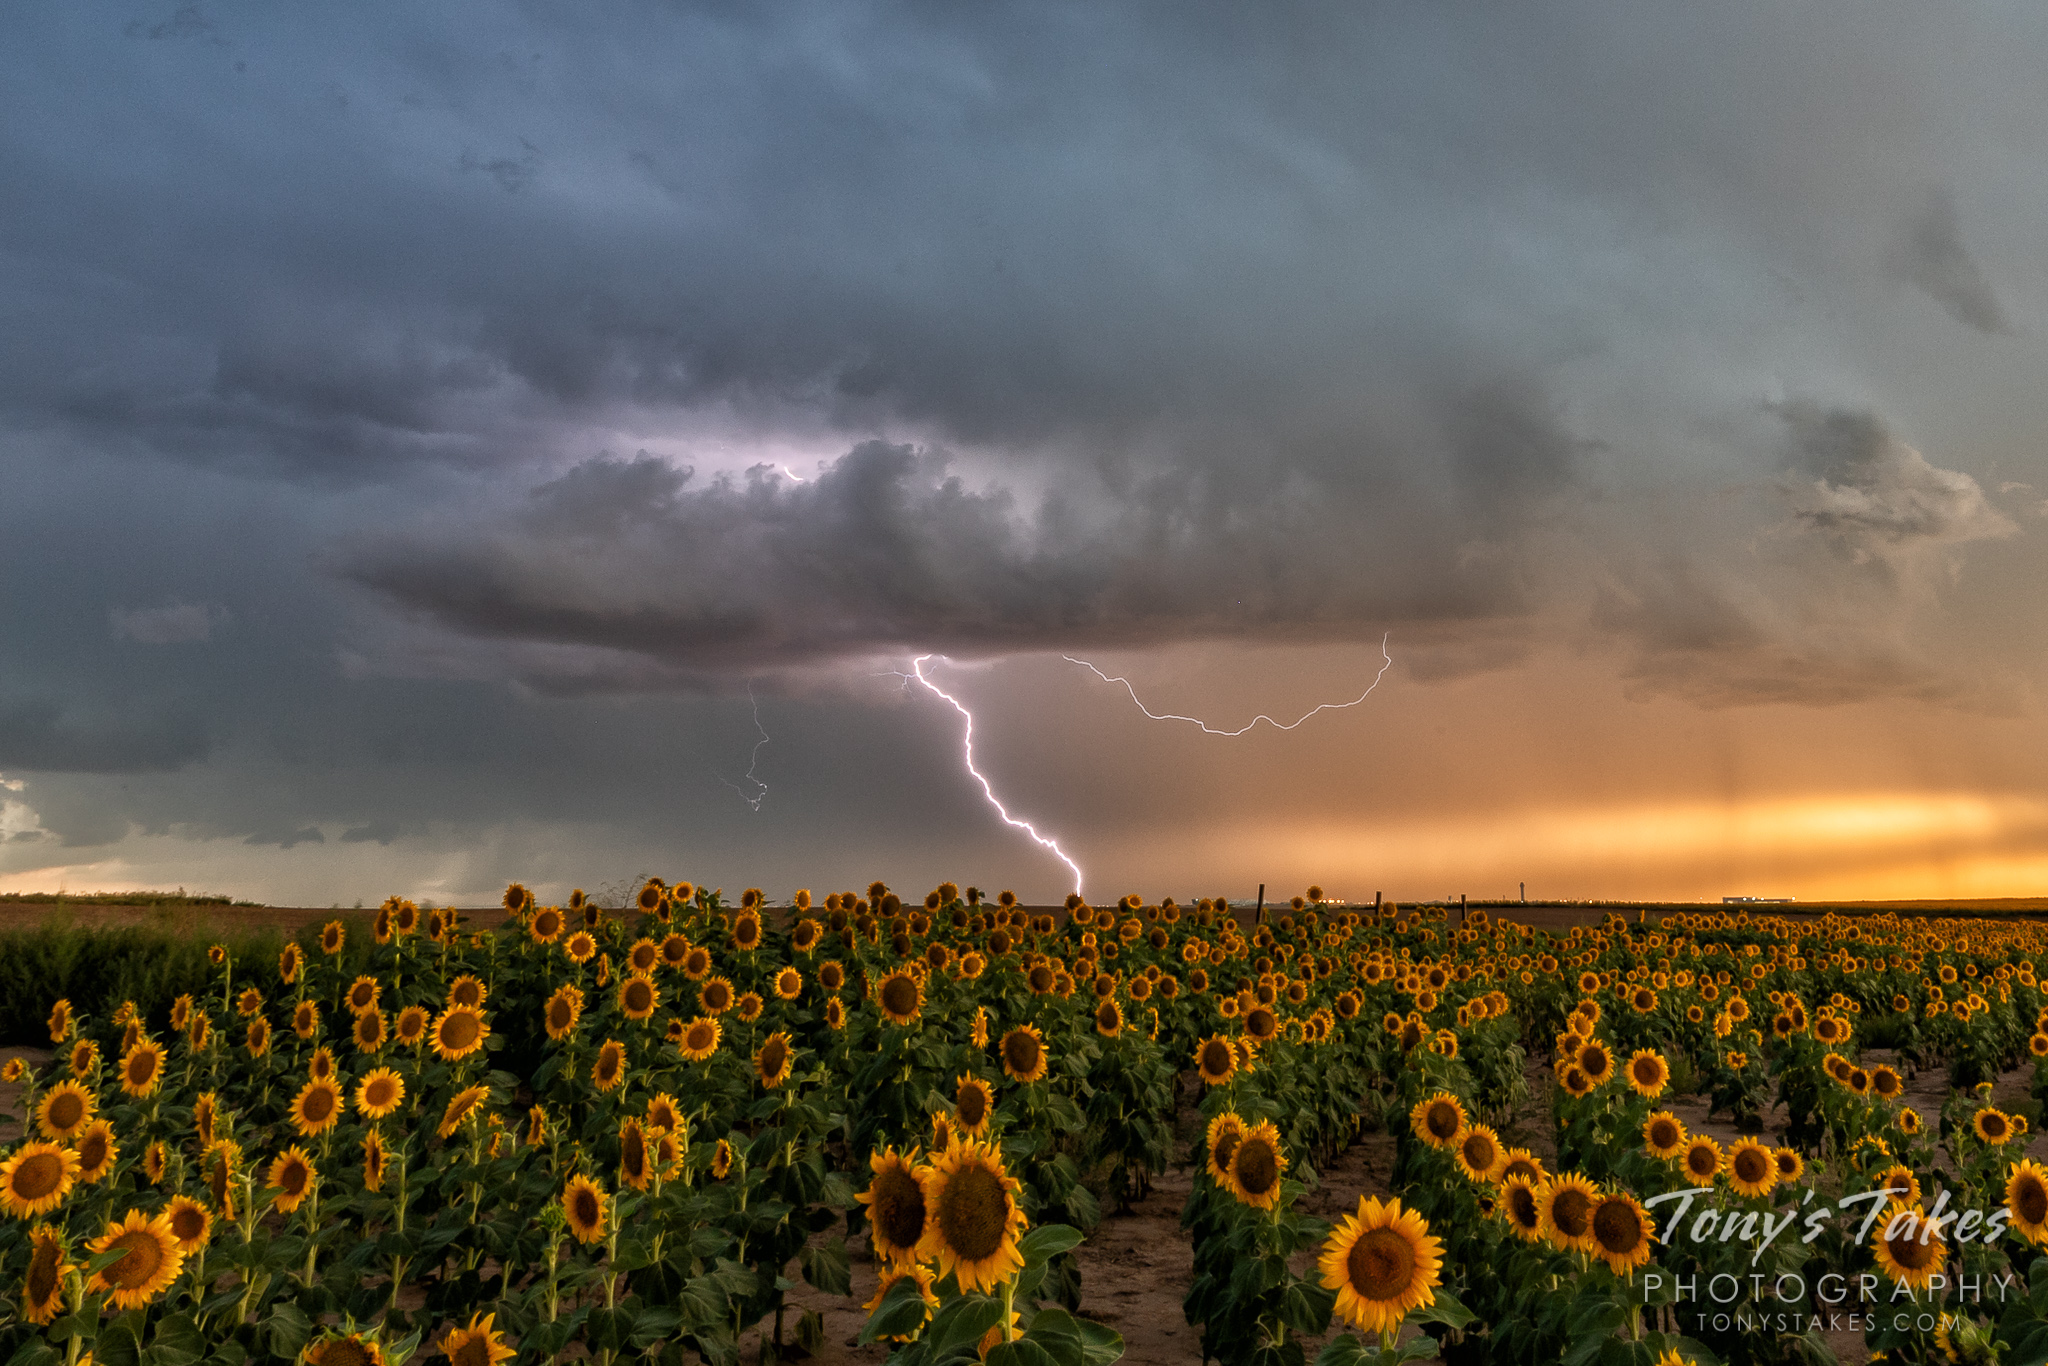 Shocking sunflowers